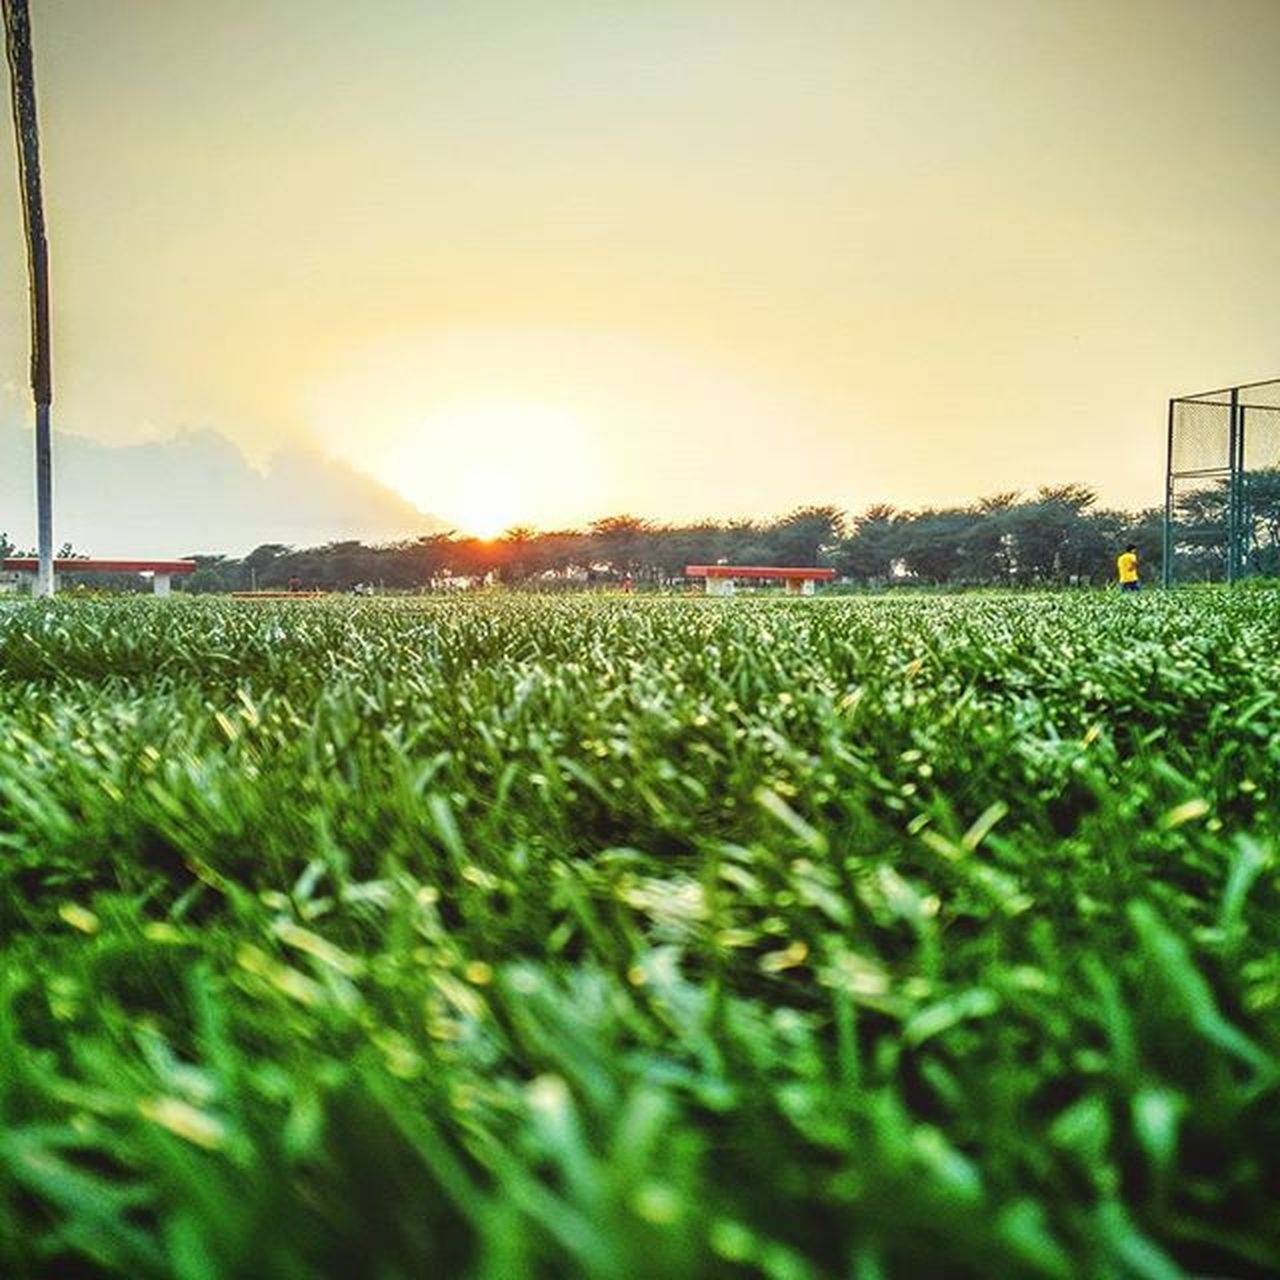 field, agriculture, tranquil scene, sunset, nature, growth, sky, tranquility, grass, rural scene, green color, beauty in nature, no people, outdoors, scenics, plant, soccer field, tree, day, freshness